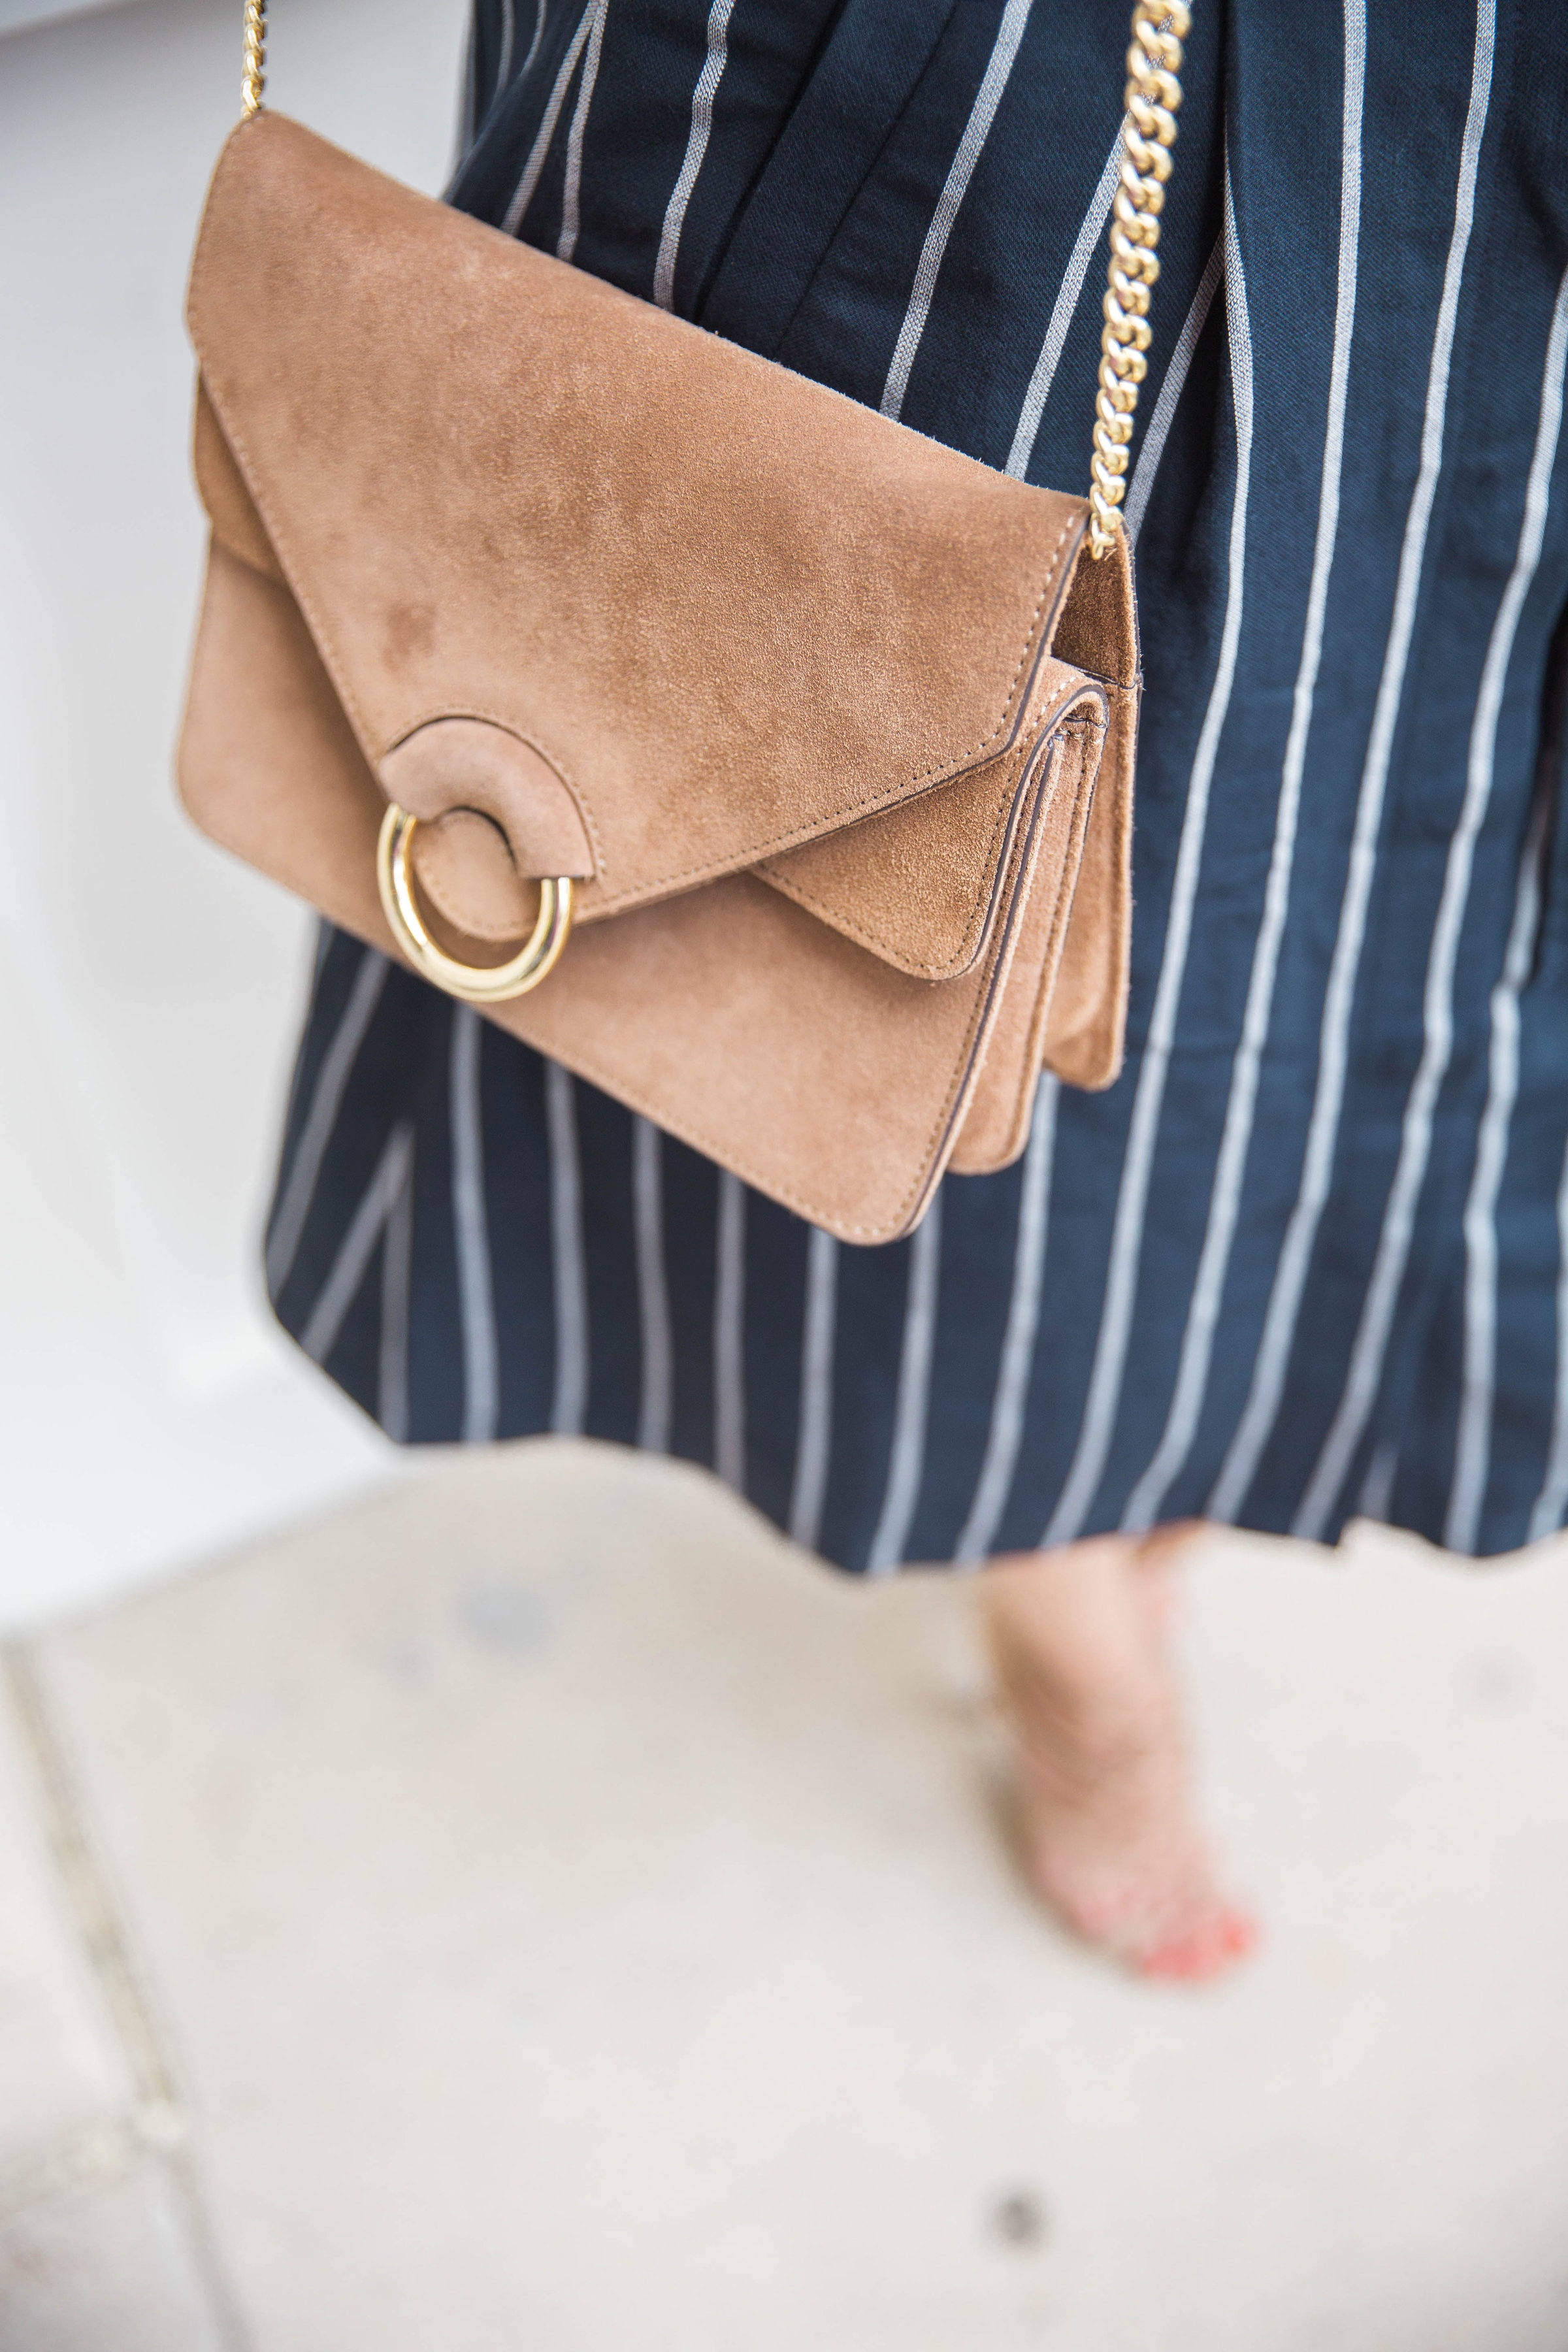 Ruffle Sleeves, Striped Skirt, Suede Bag